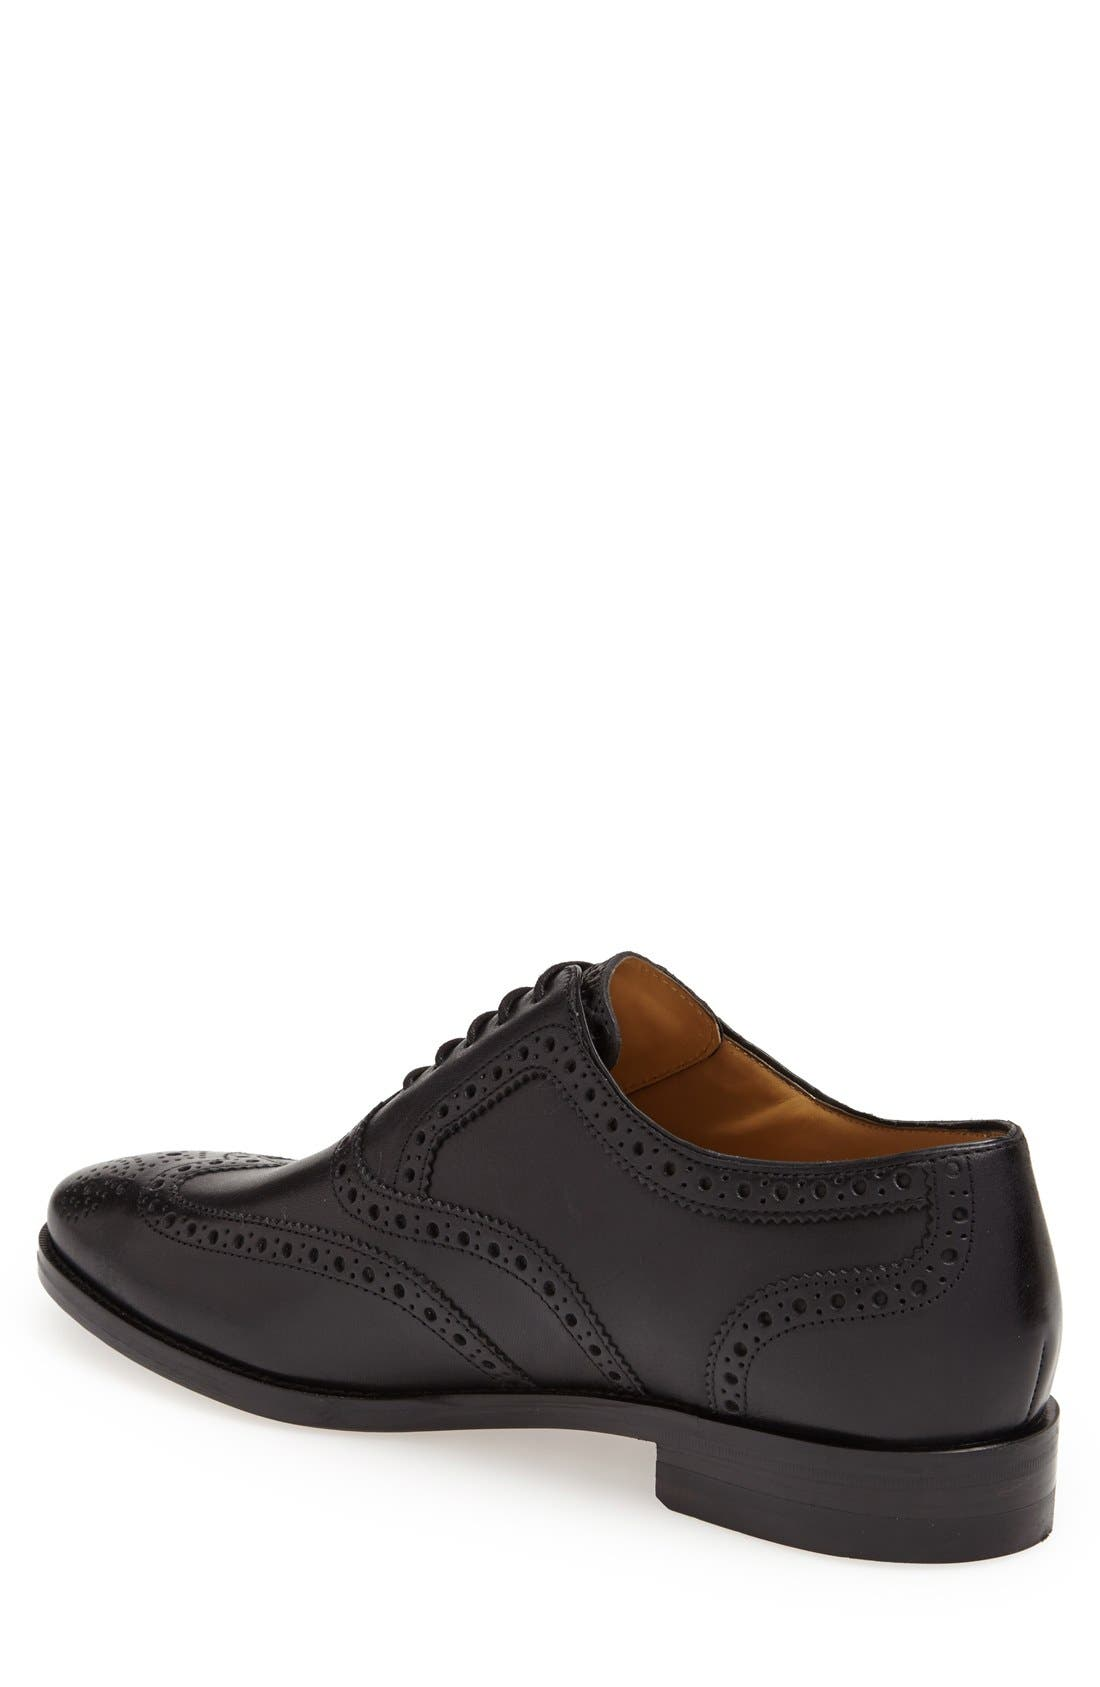 'Cambridge' Wingtip,                             Alternate thumbnail 2, color,                             BLACK